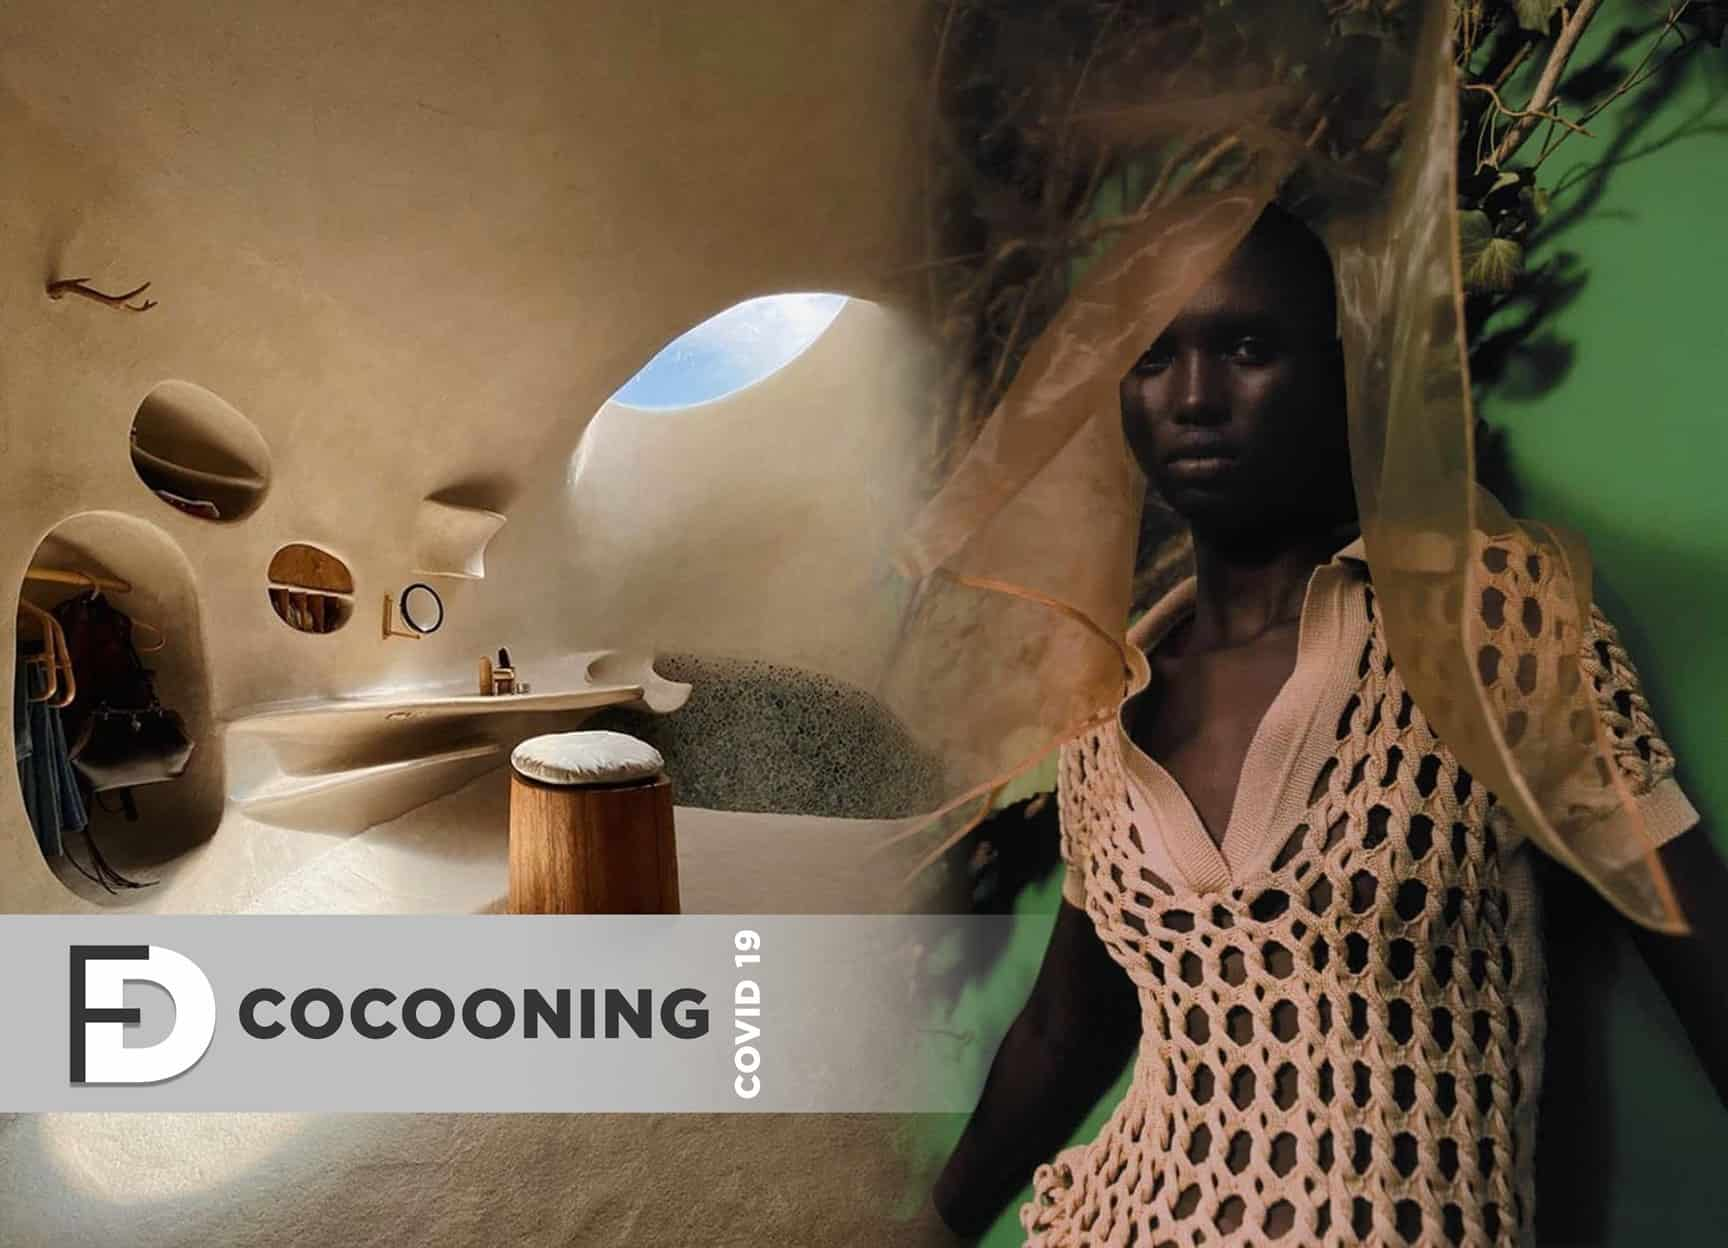 Trends 2021 Cocoon fashion post covid19 1